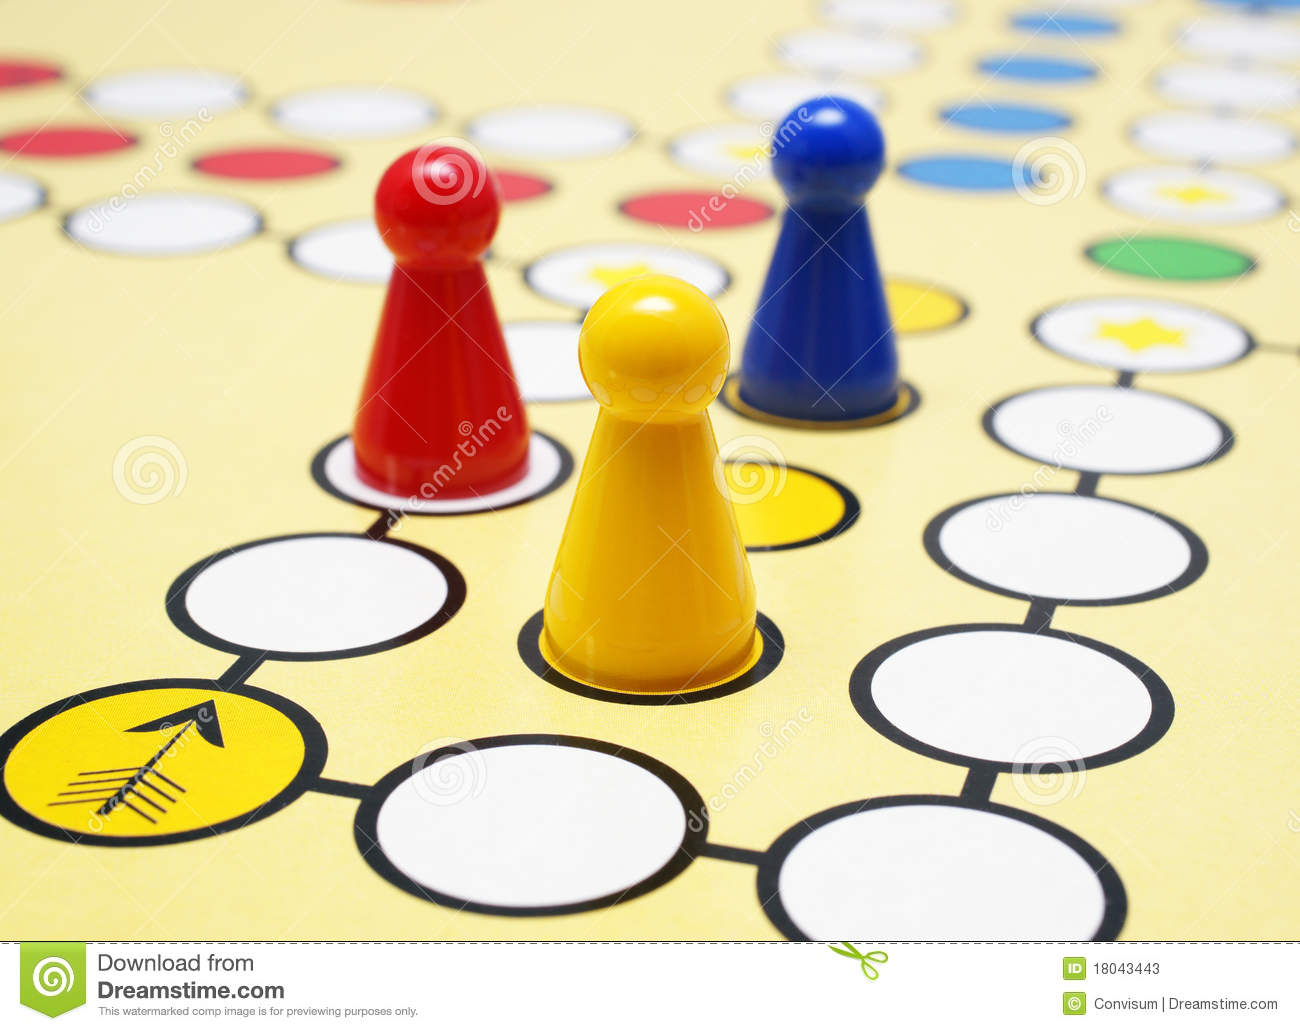 Colorful board game stock photos image 18043443 for Game design frankfurt